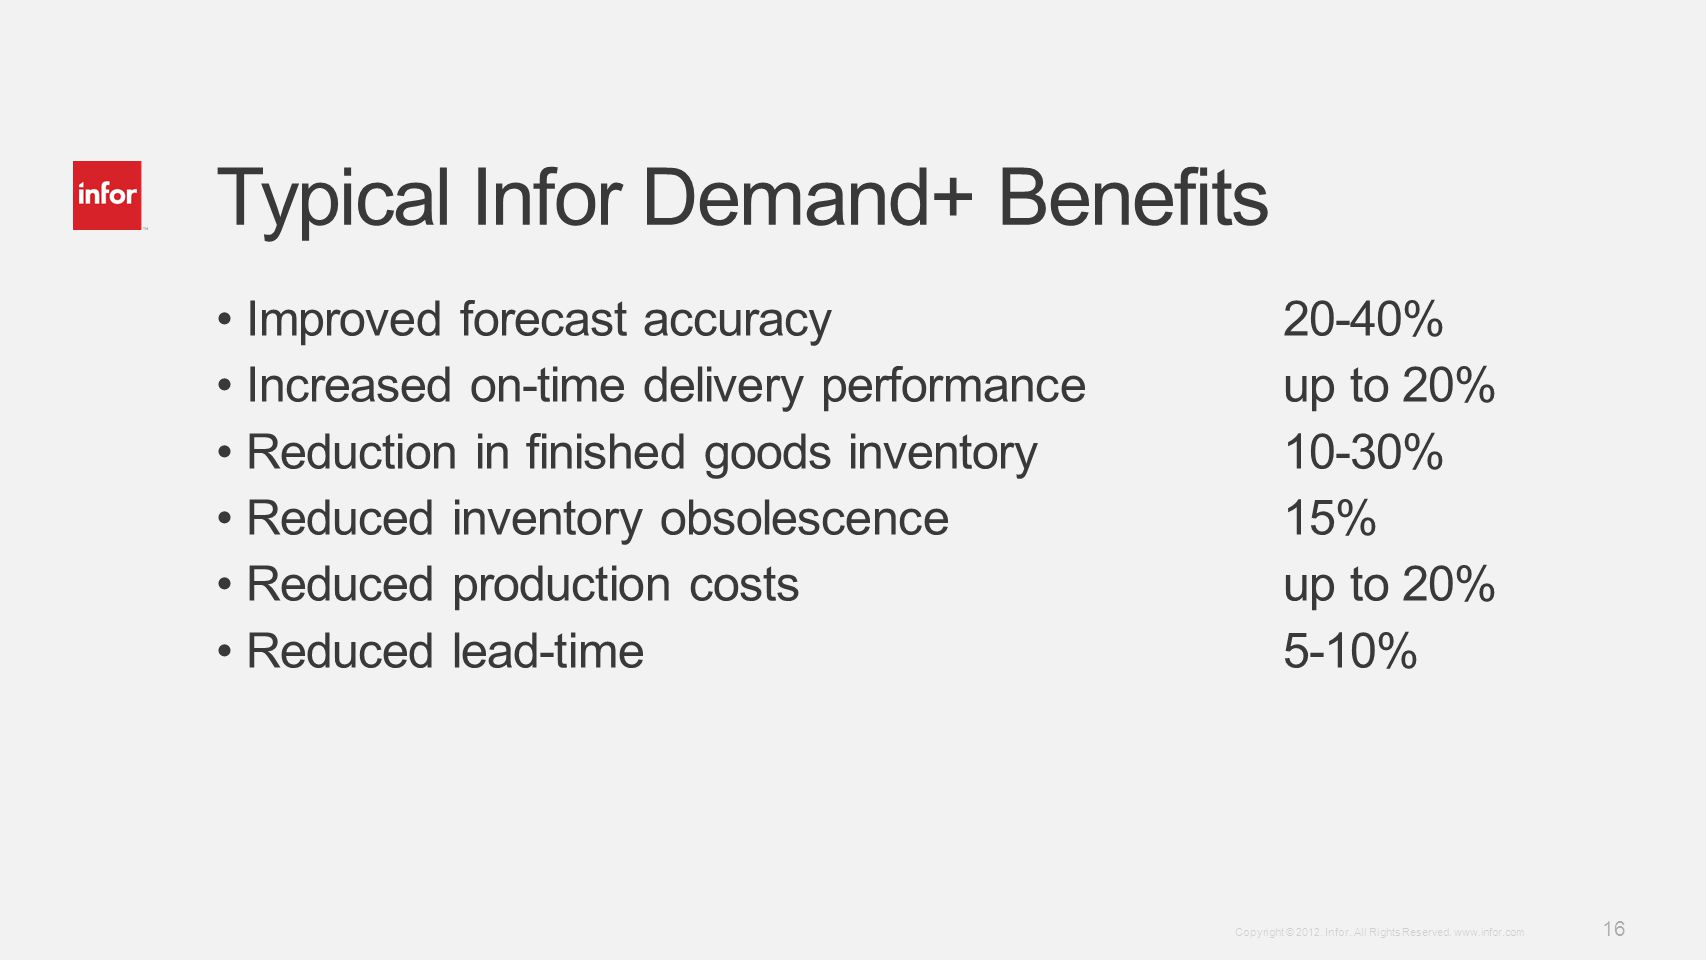 Typical Infor Demand+ Benefits